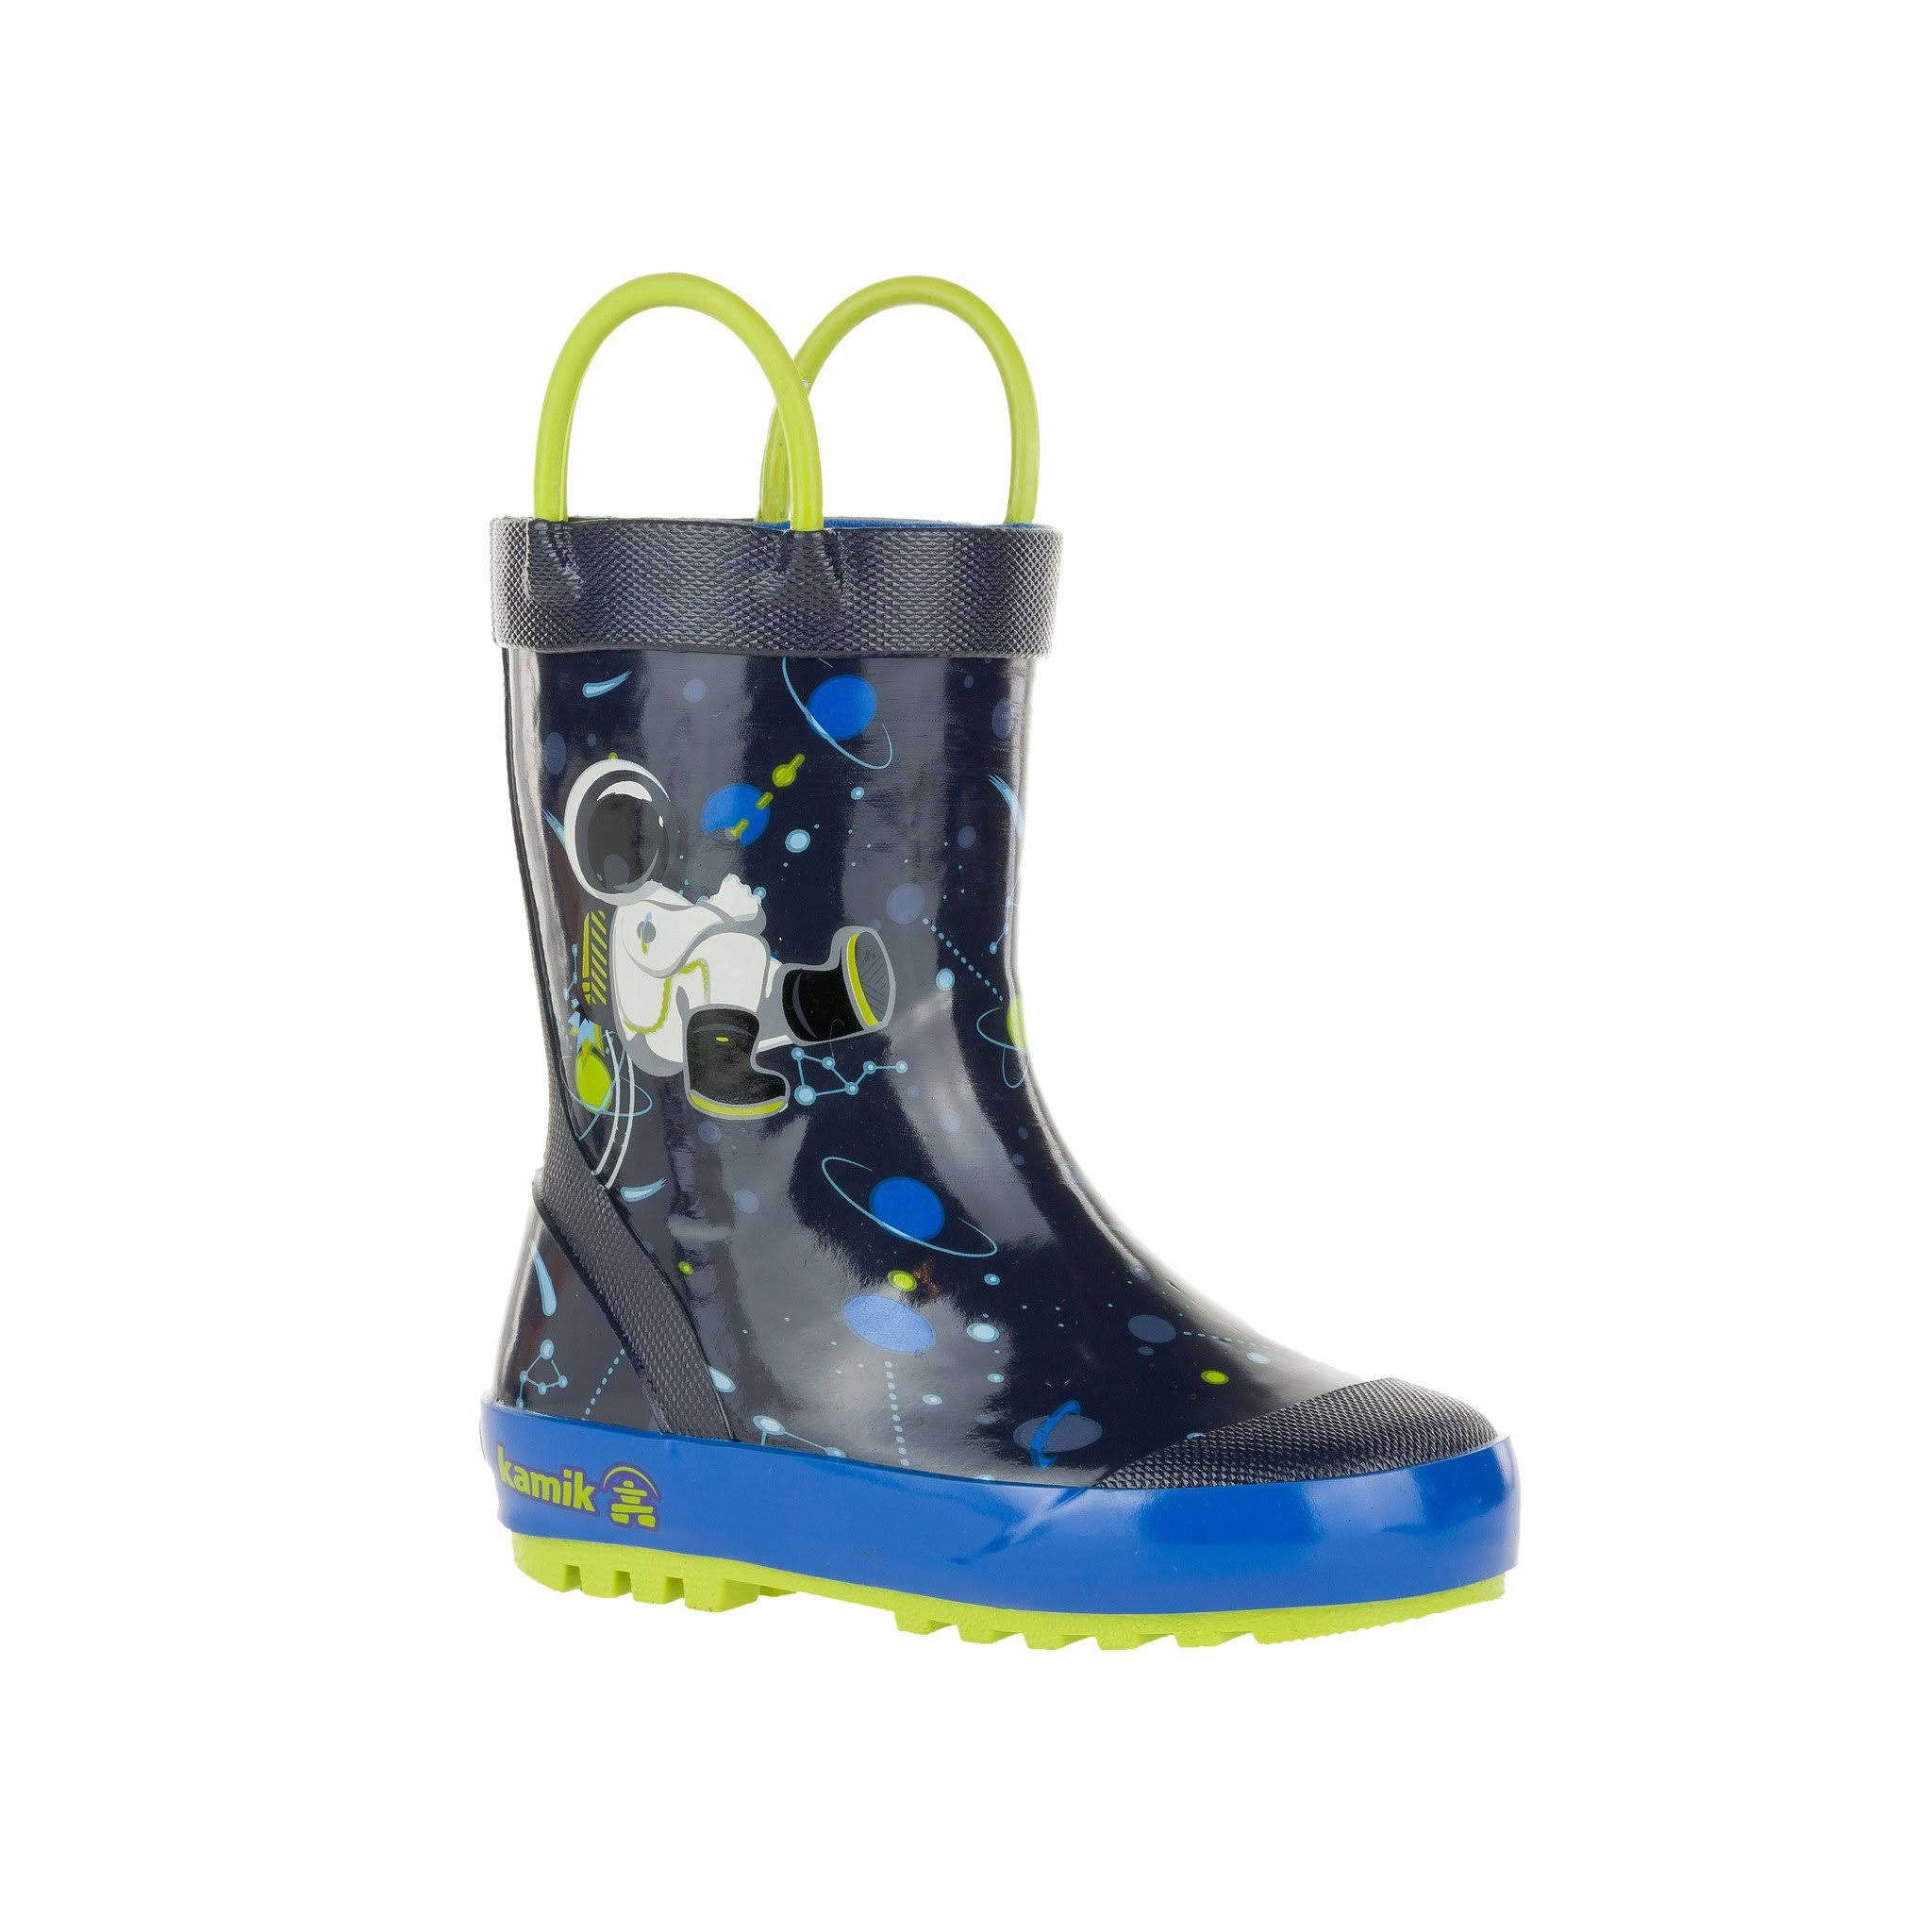 Kamik Kids Orbit Rain Boots - Navy, 7 US